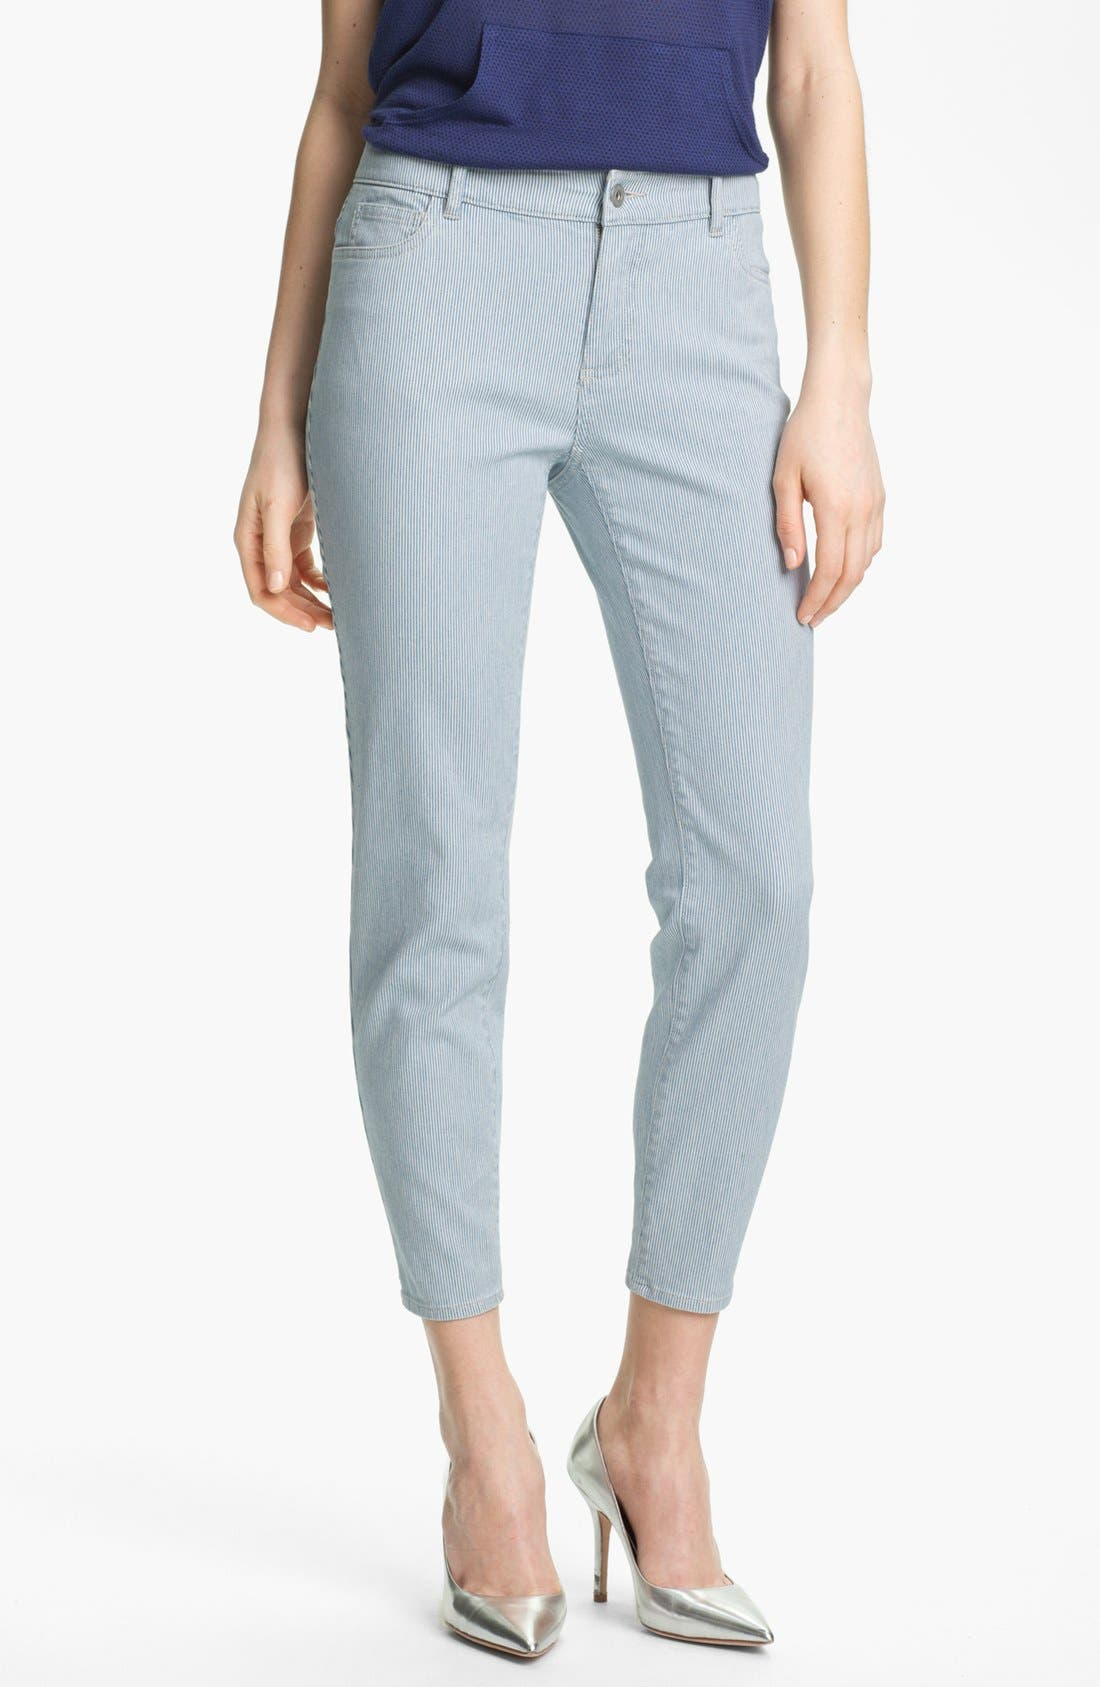 Alternate Image 1 Selected - Two by Vince Camuto Pinstripe Zip Ankle Jeans